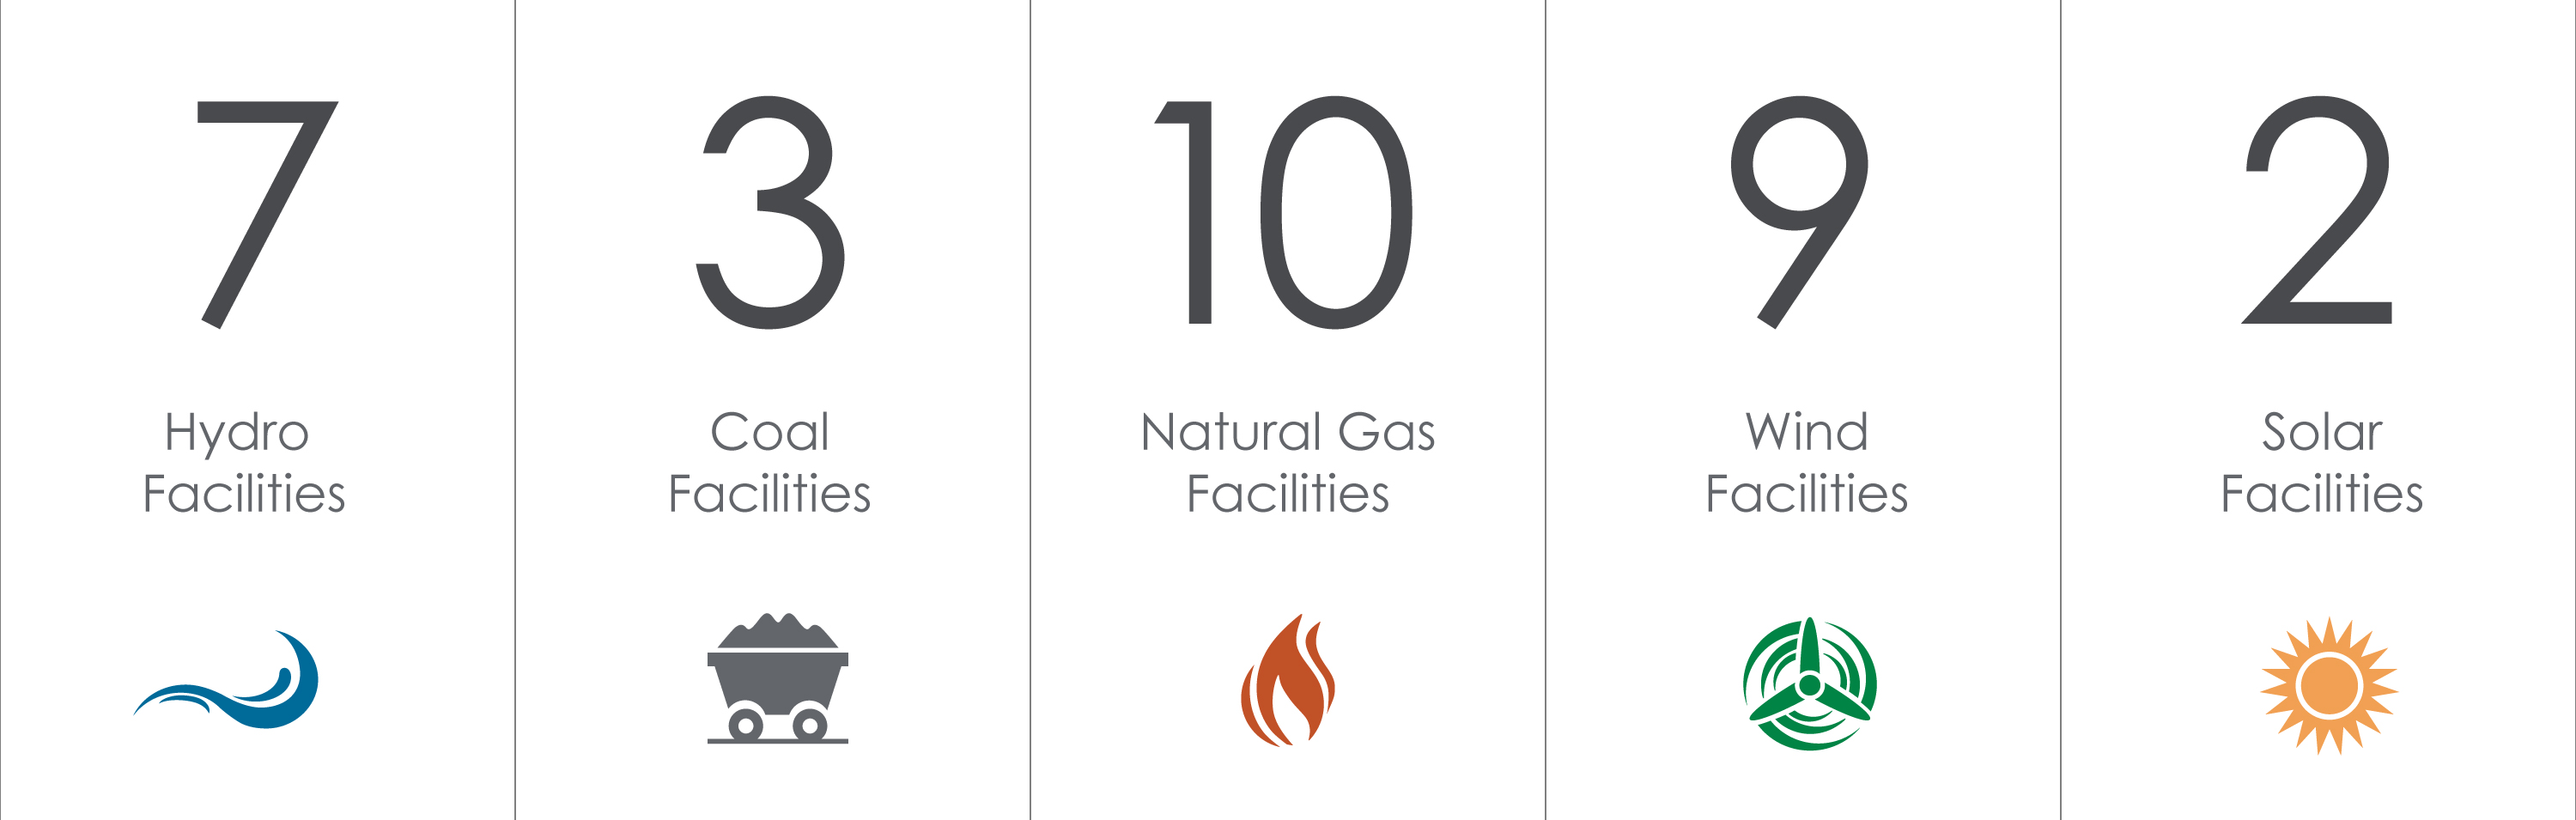 8 Hydro facilities, 3 Coal facilities, 9 Natural Gas facilities, 6 Wind facilities